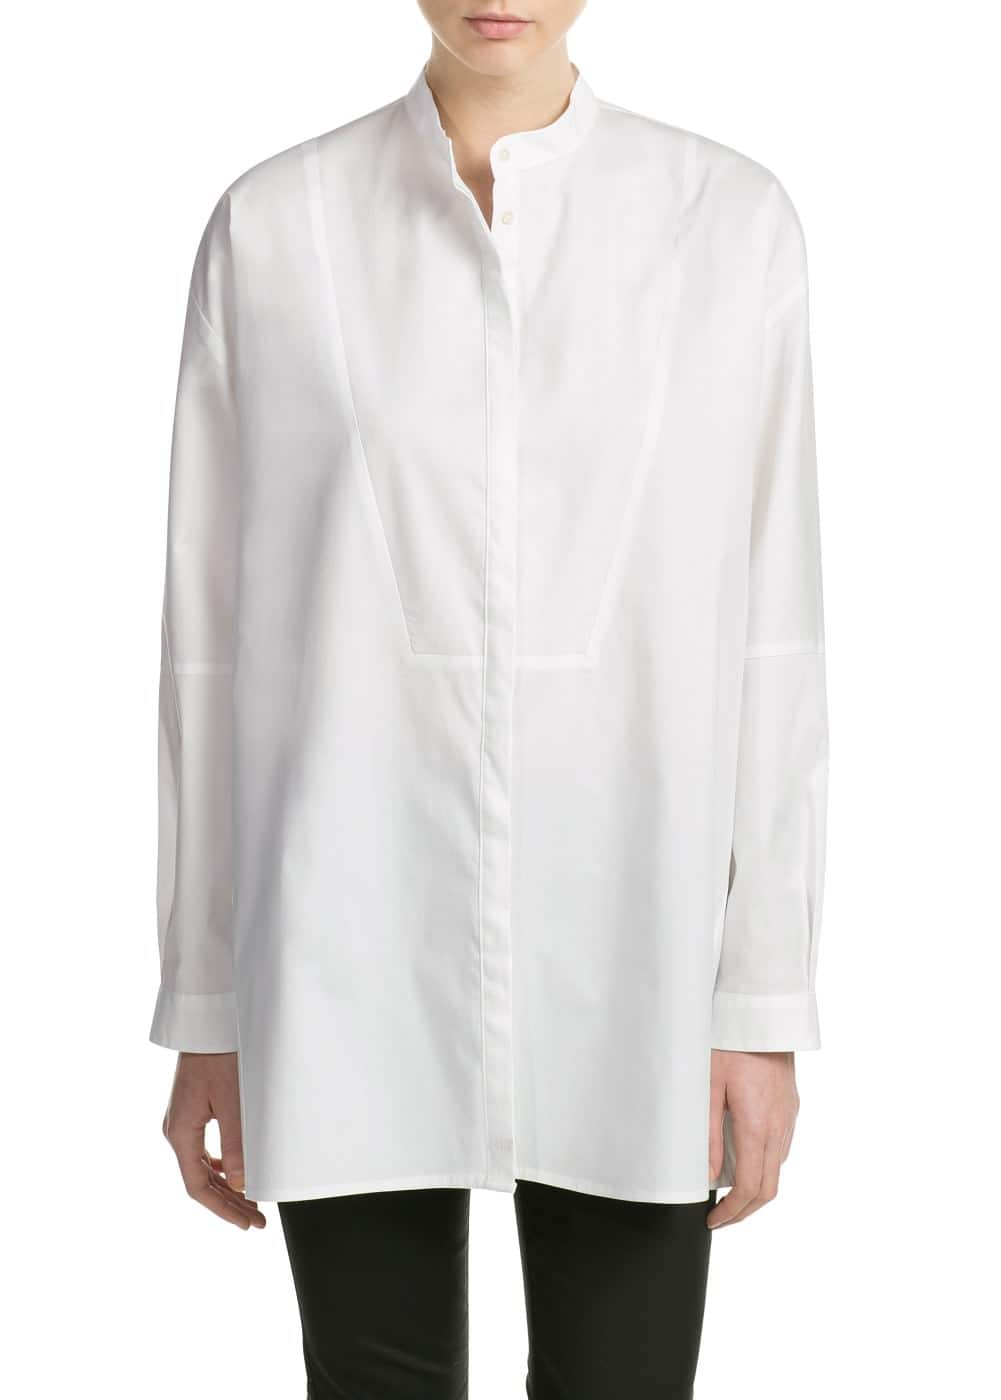 Mao collar shirt